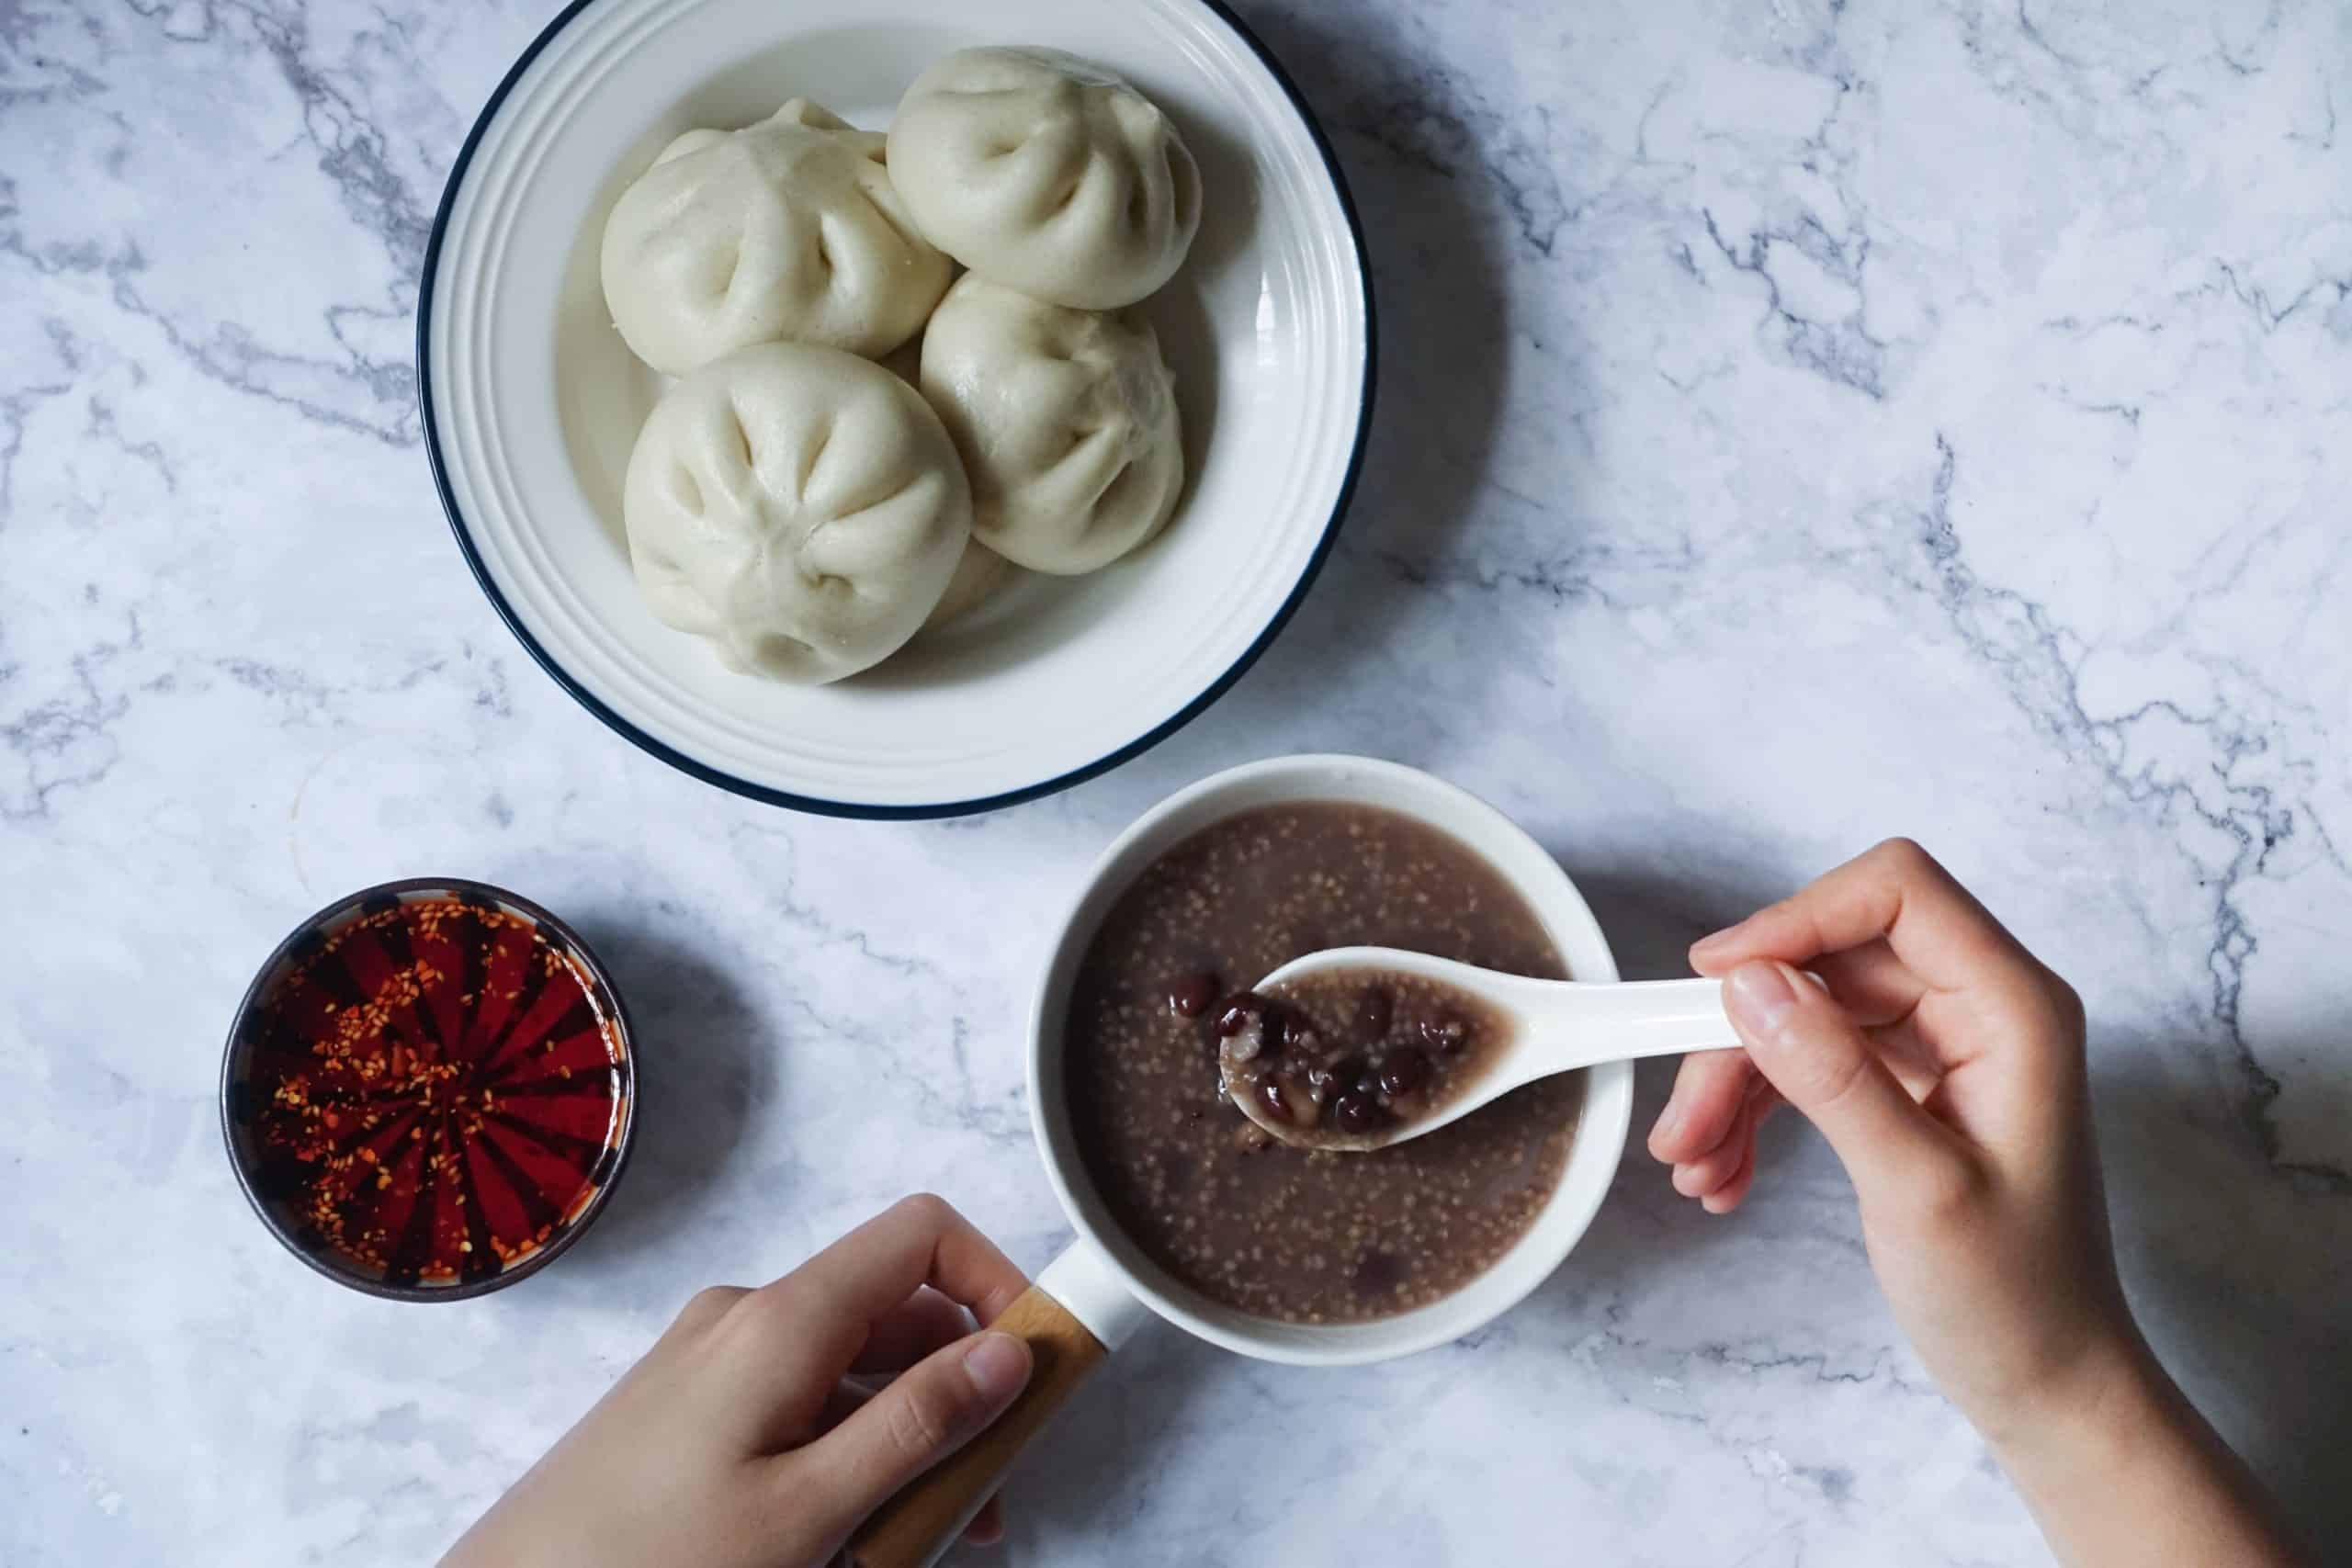 How You Should Make Chinese Dumplings